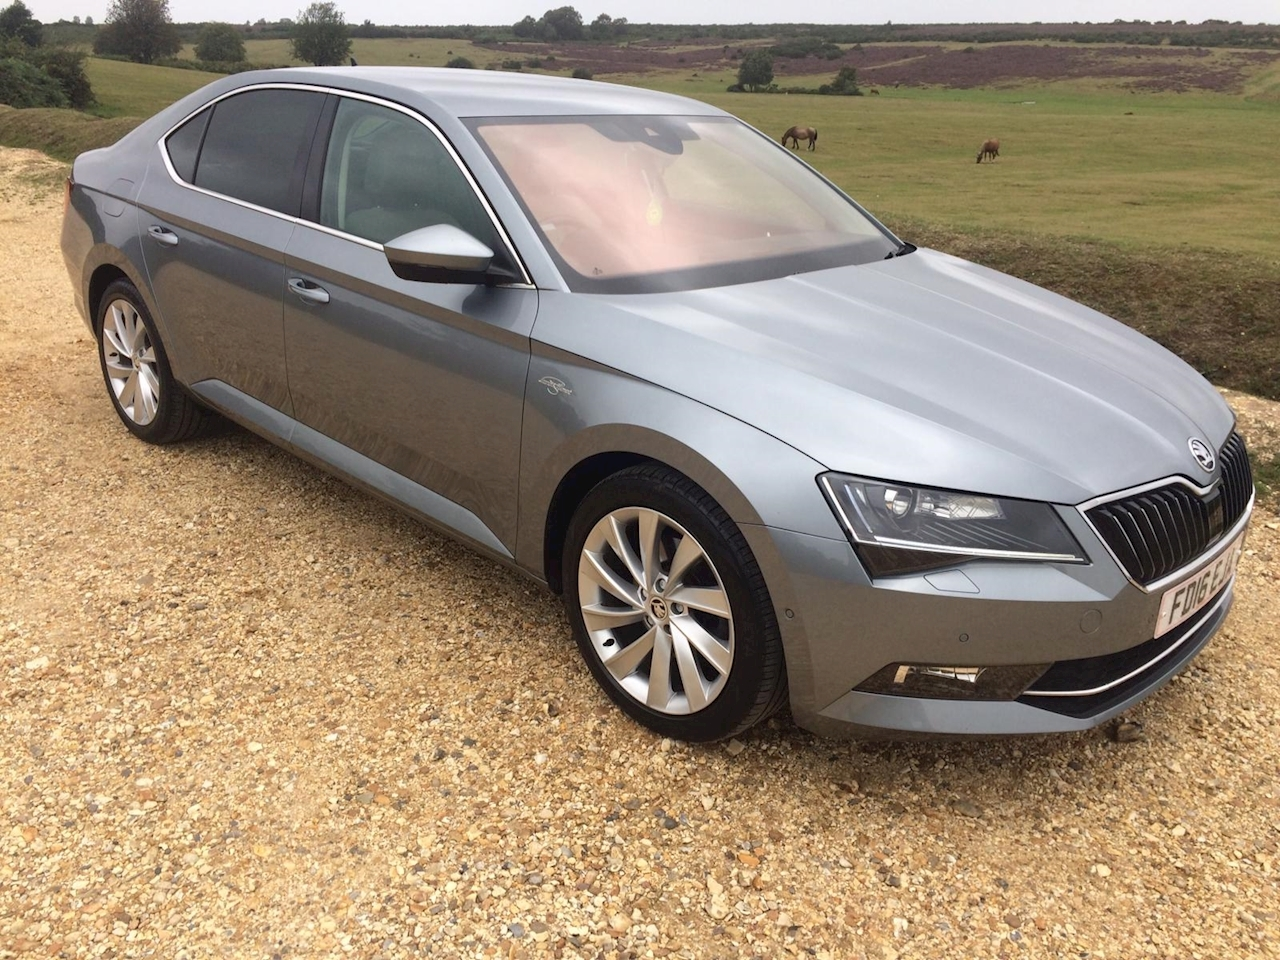 SKODA Superb Laurin & Klement Hatchback 2.0 DSG Auto 6Spd Diesel